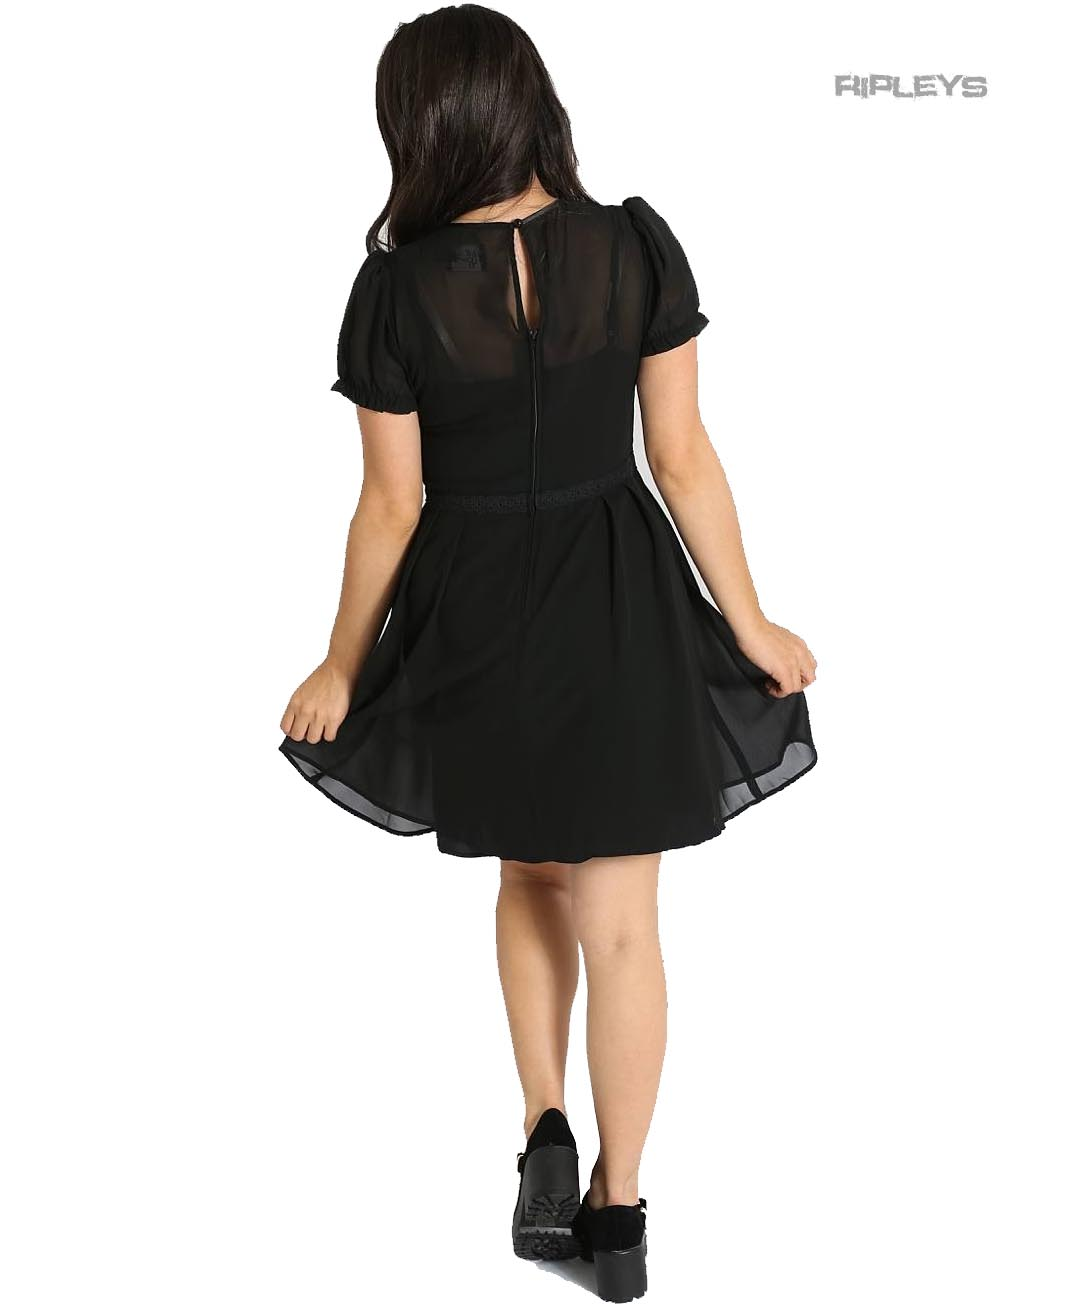 Hell-Bunny-Gothic-Black-Floaty-Mini-Dress-ARIA-Pussy-Bow-All-Sizes thumbnail 4